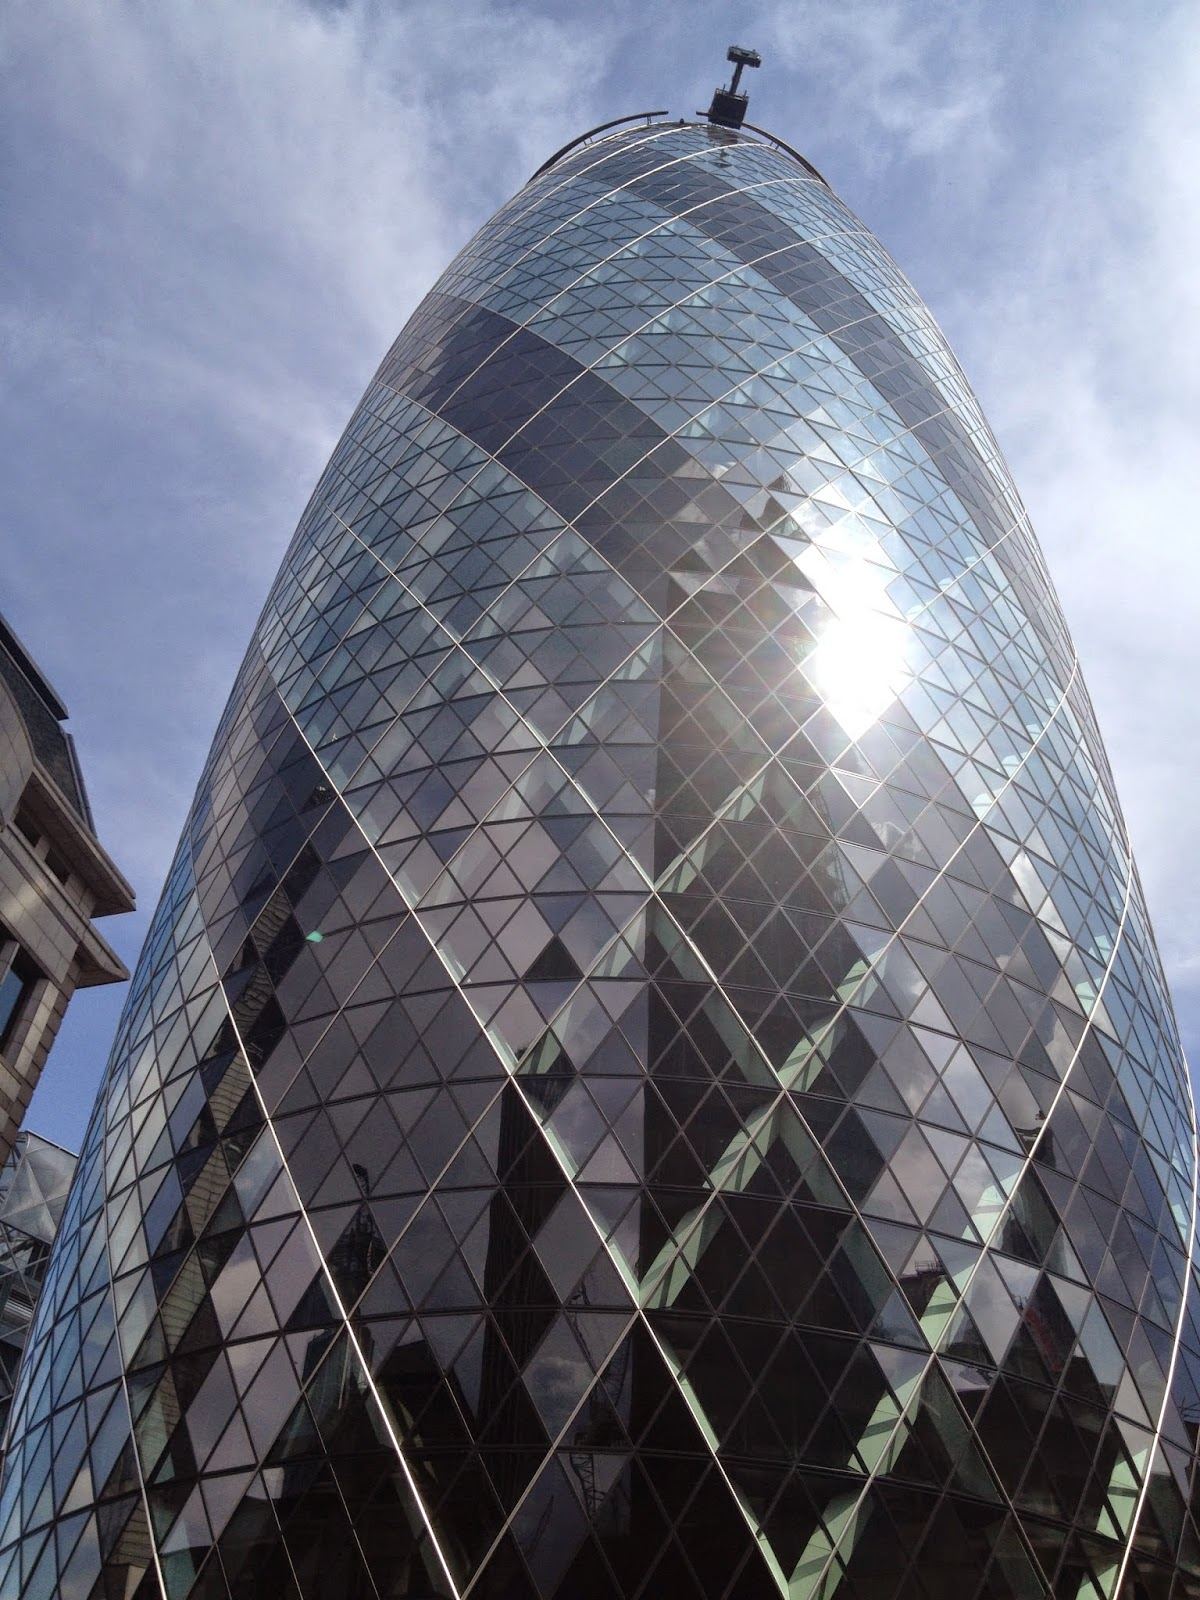 Gherkin London (photo credit: http://researchandramblings.blogspot.com/)